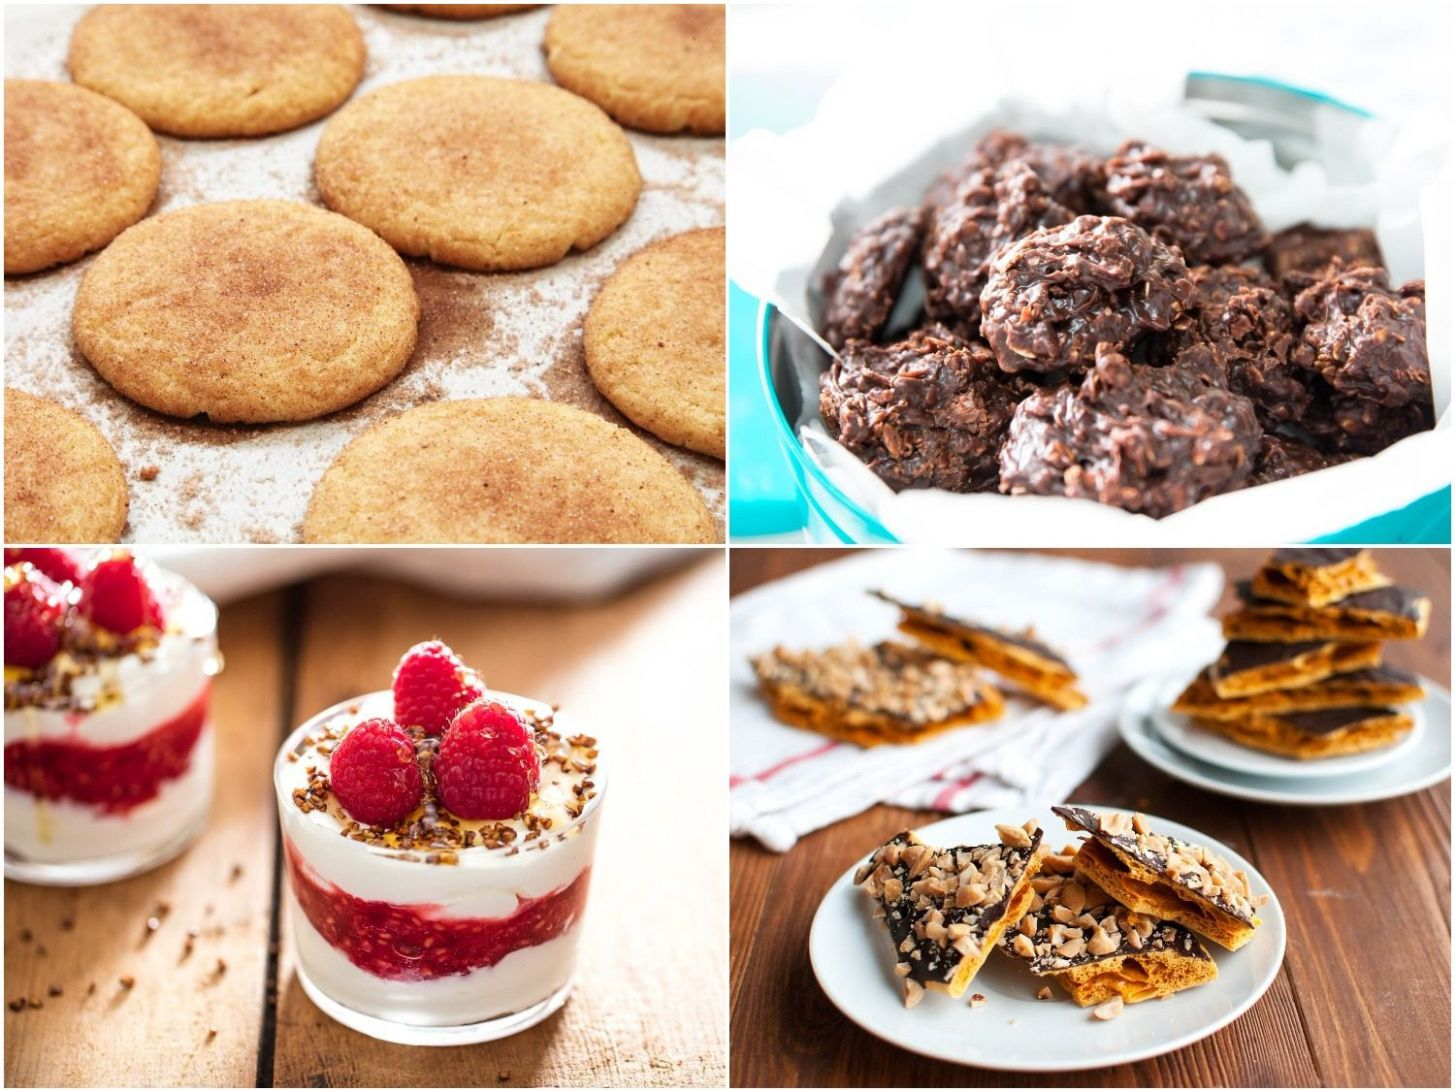 10 Quick and Easy Dessert Recipes | Serious Eats - Dessert Recipes Easy And Quick